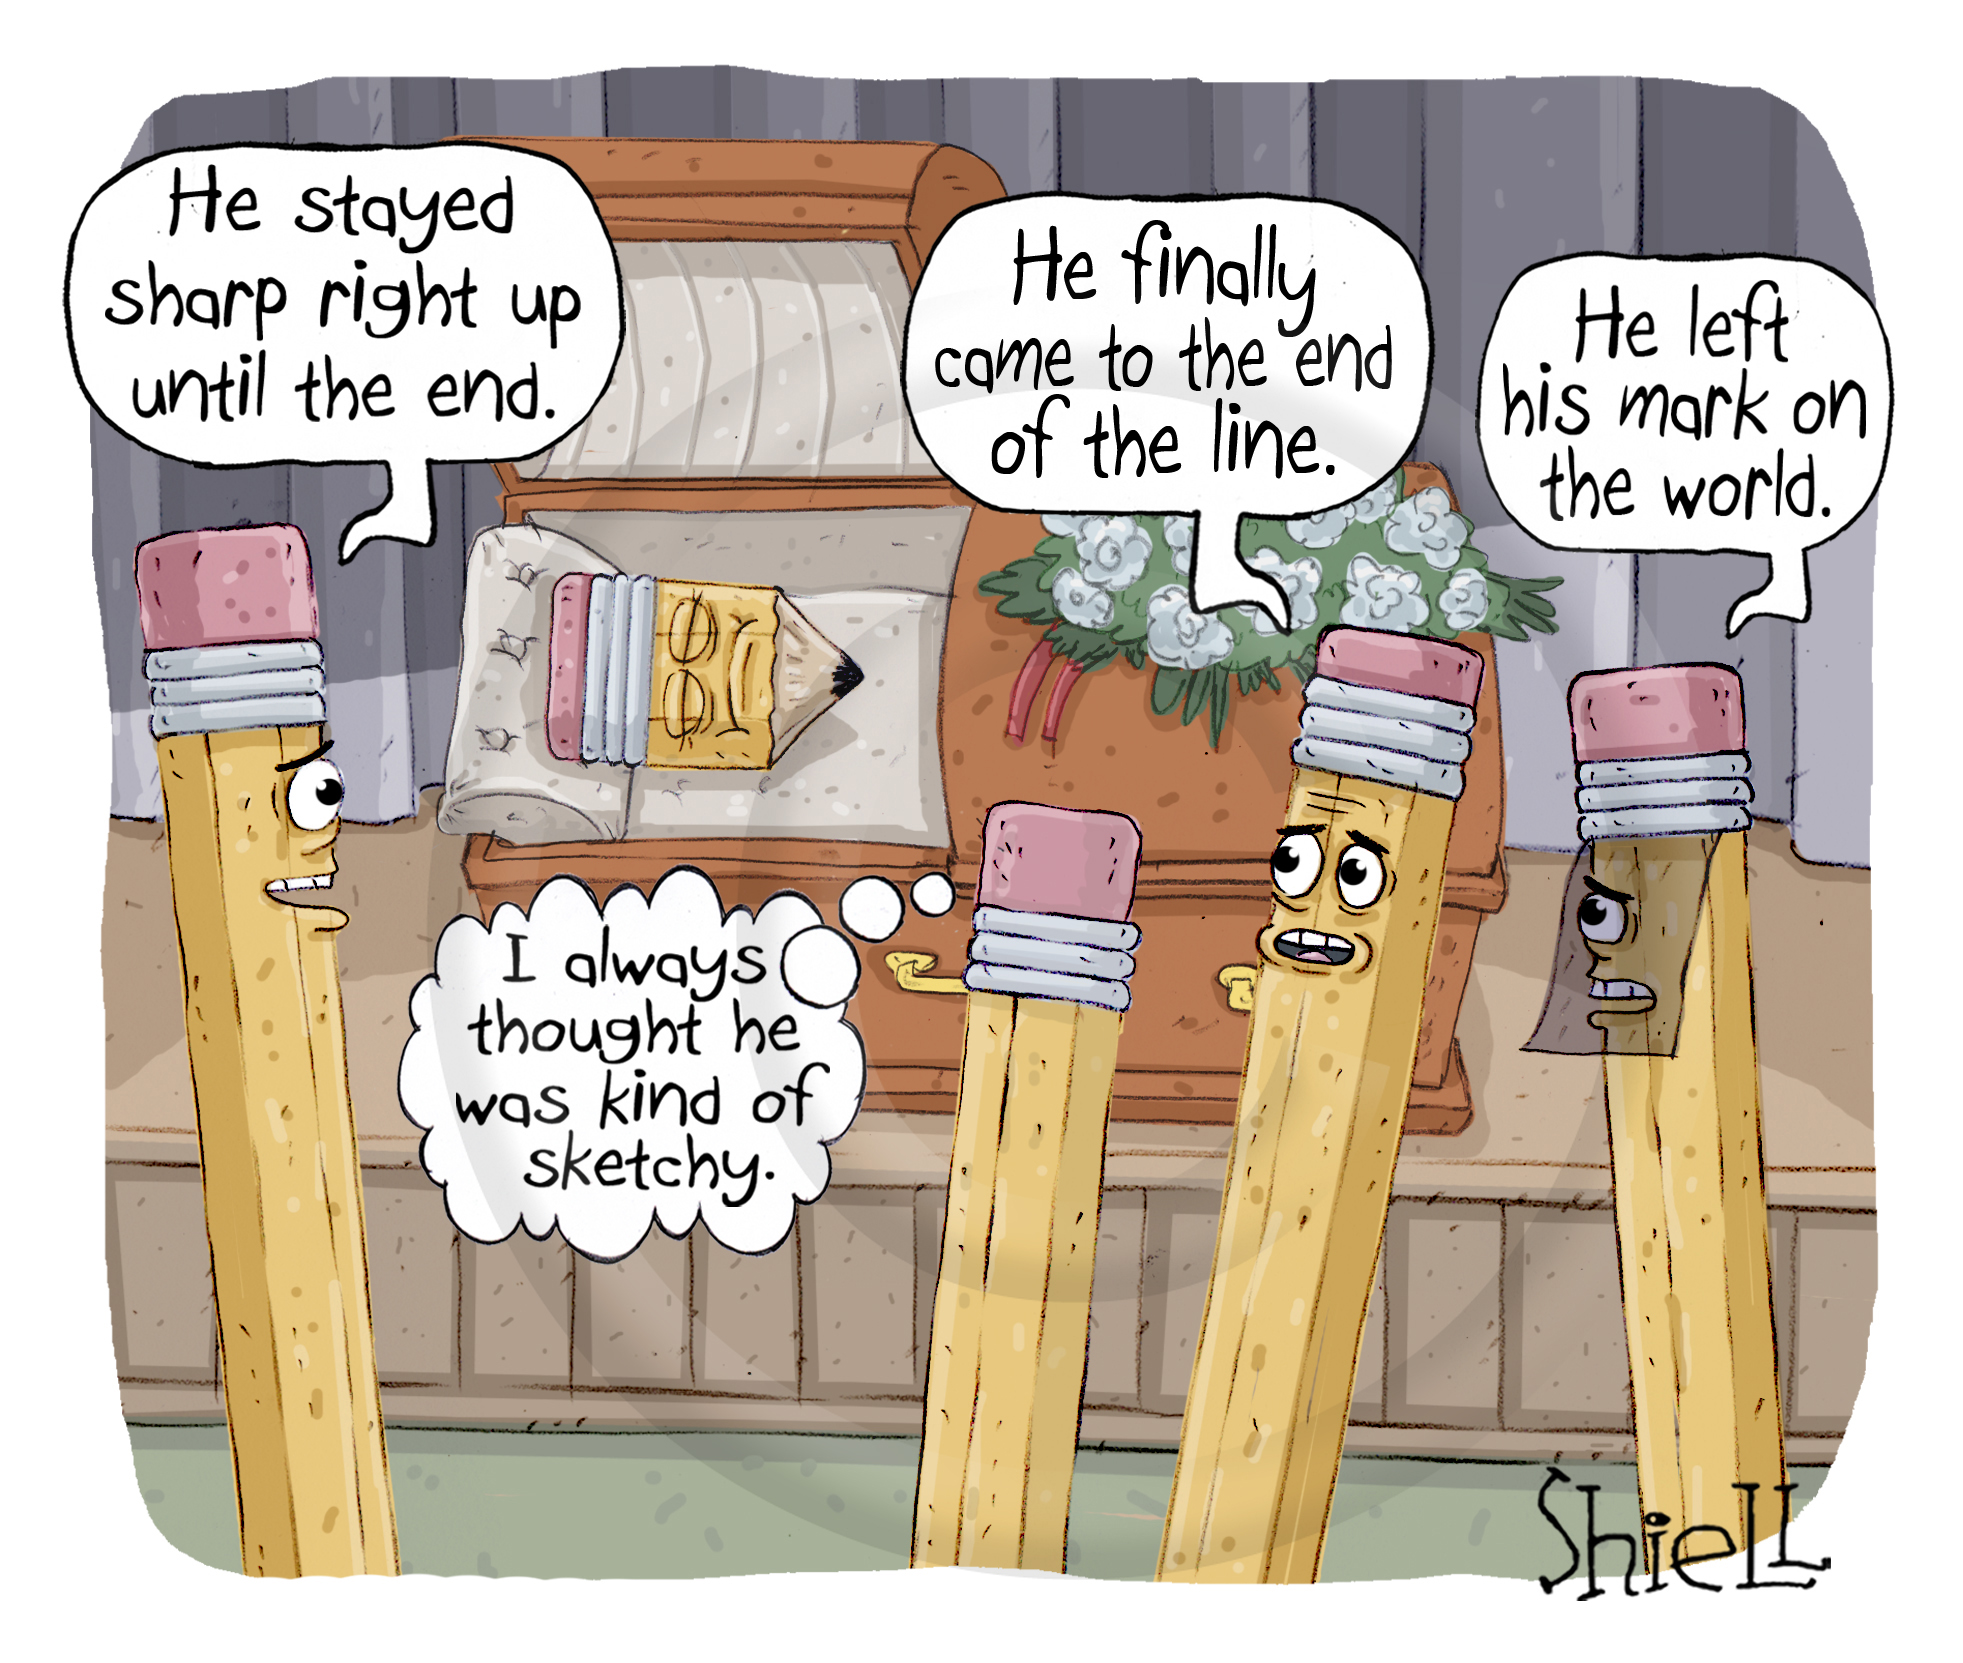 Pencil Funeral. Mourners at a pencil's funeral make really bad pencil puns.